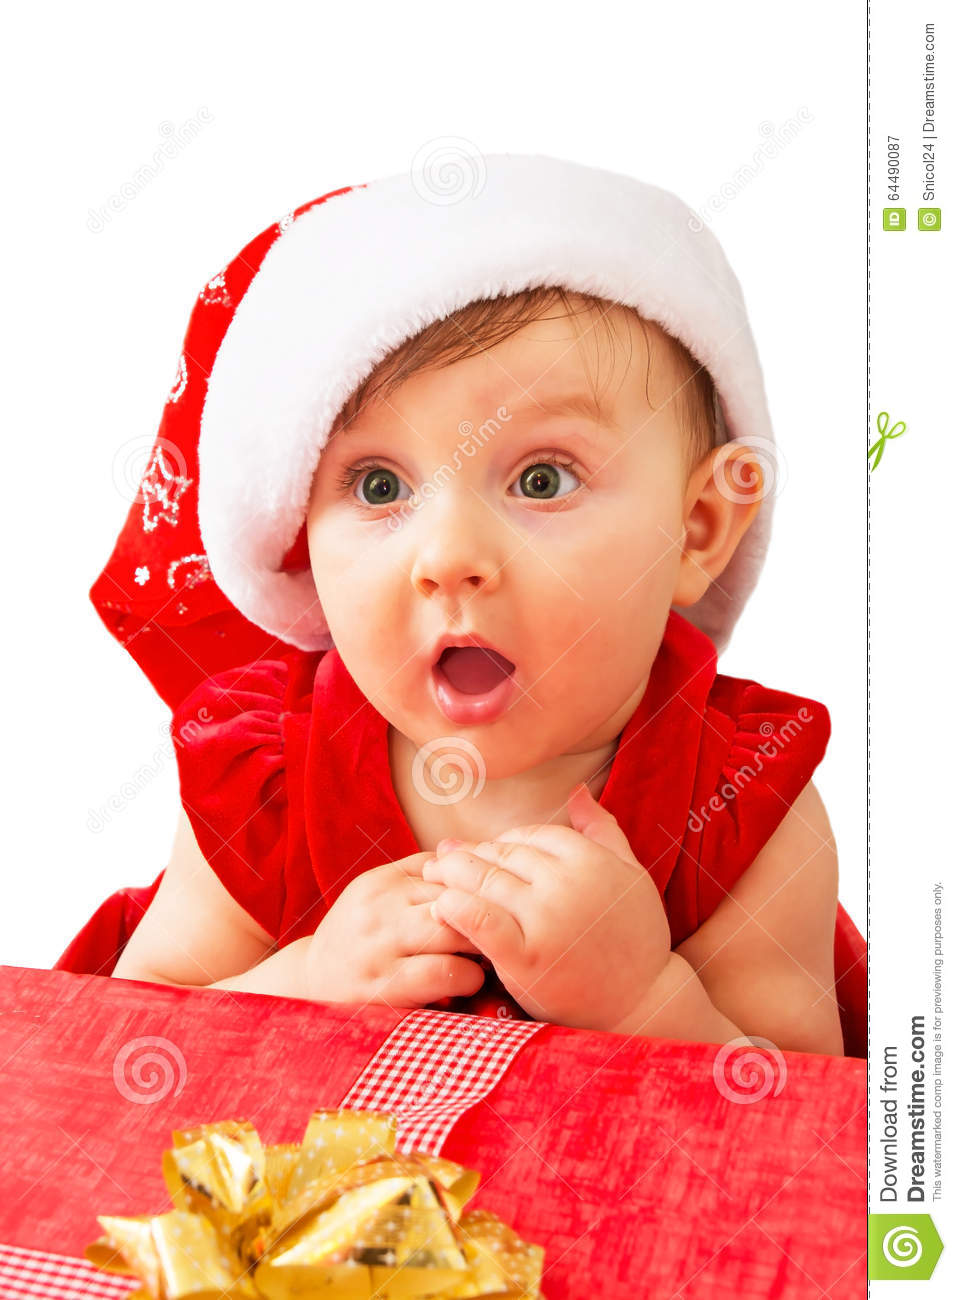 Cute christmas happy curious smiling newborn baby girl in a red dress